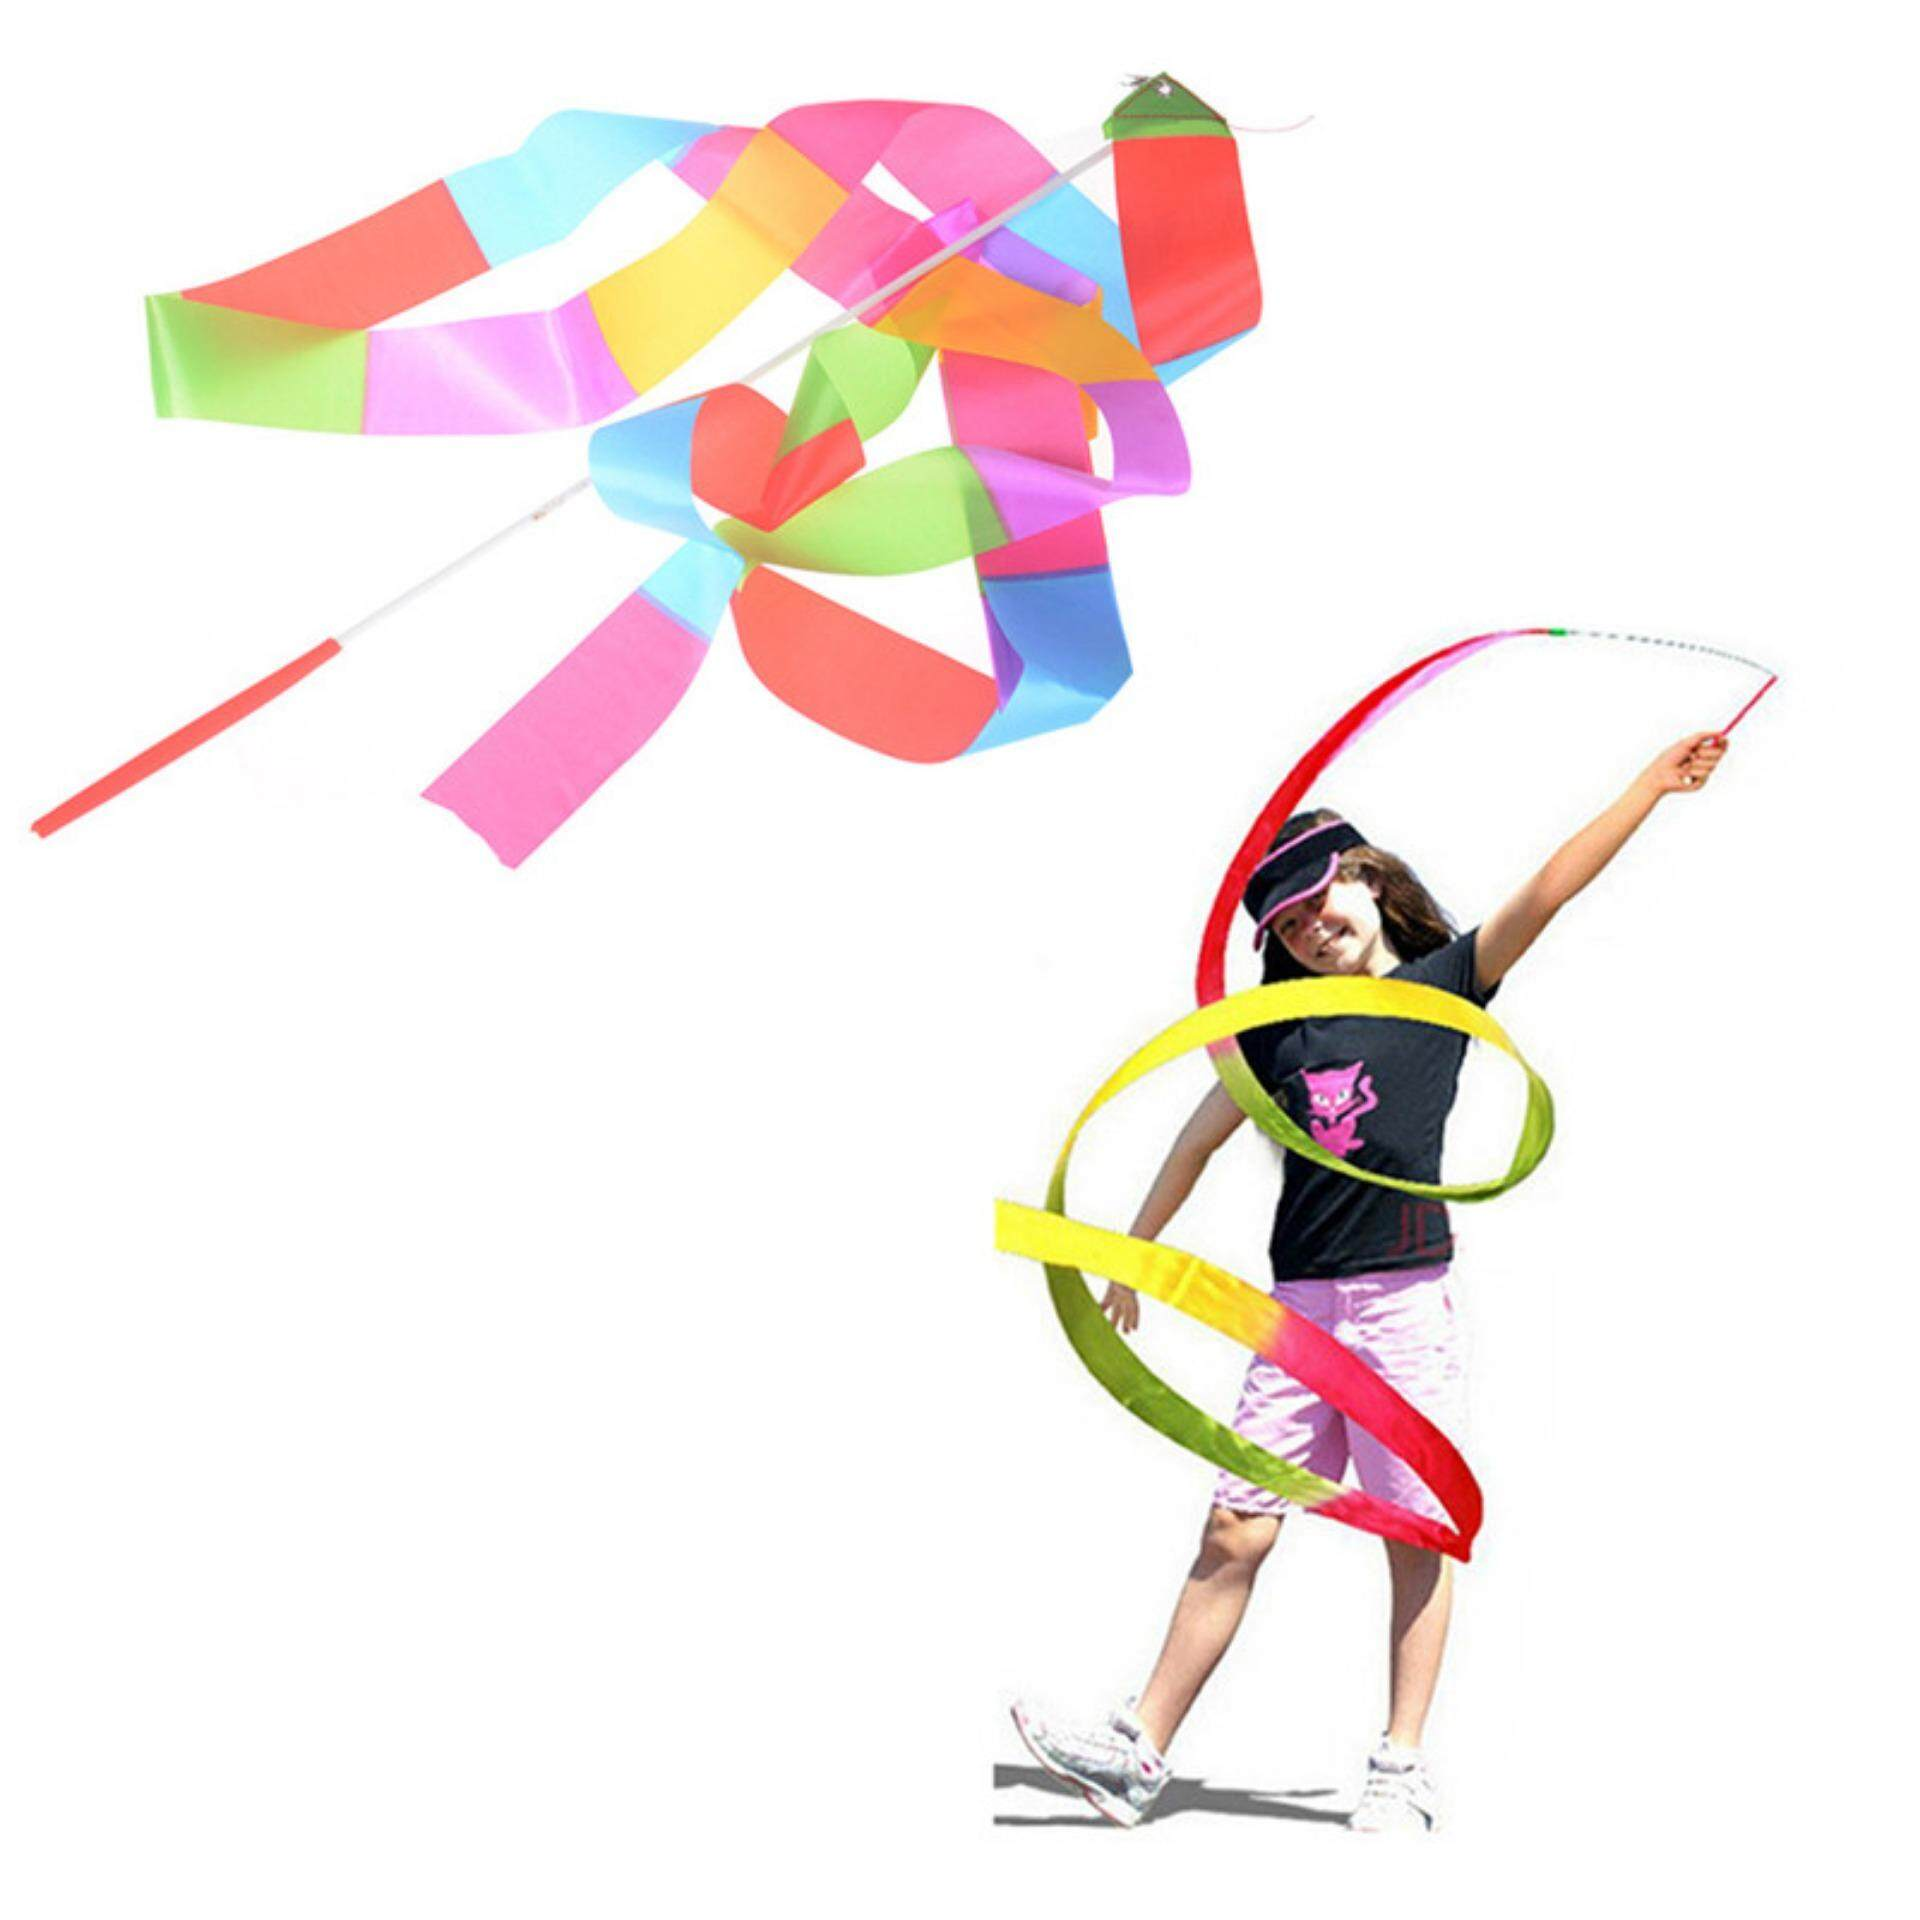 Sky Wing Fashion Colorful 4m Ribbon Toy Gymnastics Dance Dancer Toy Kid Outdoor Sport Toy By Sky Wing.